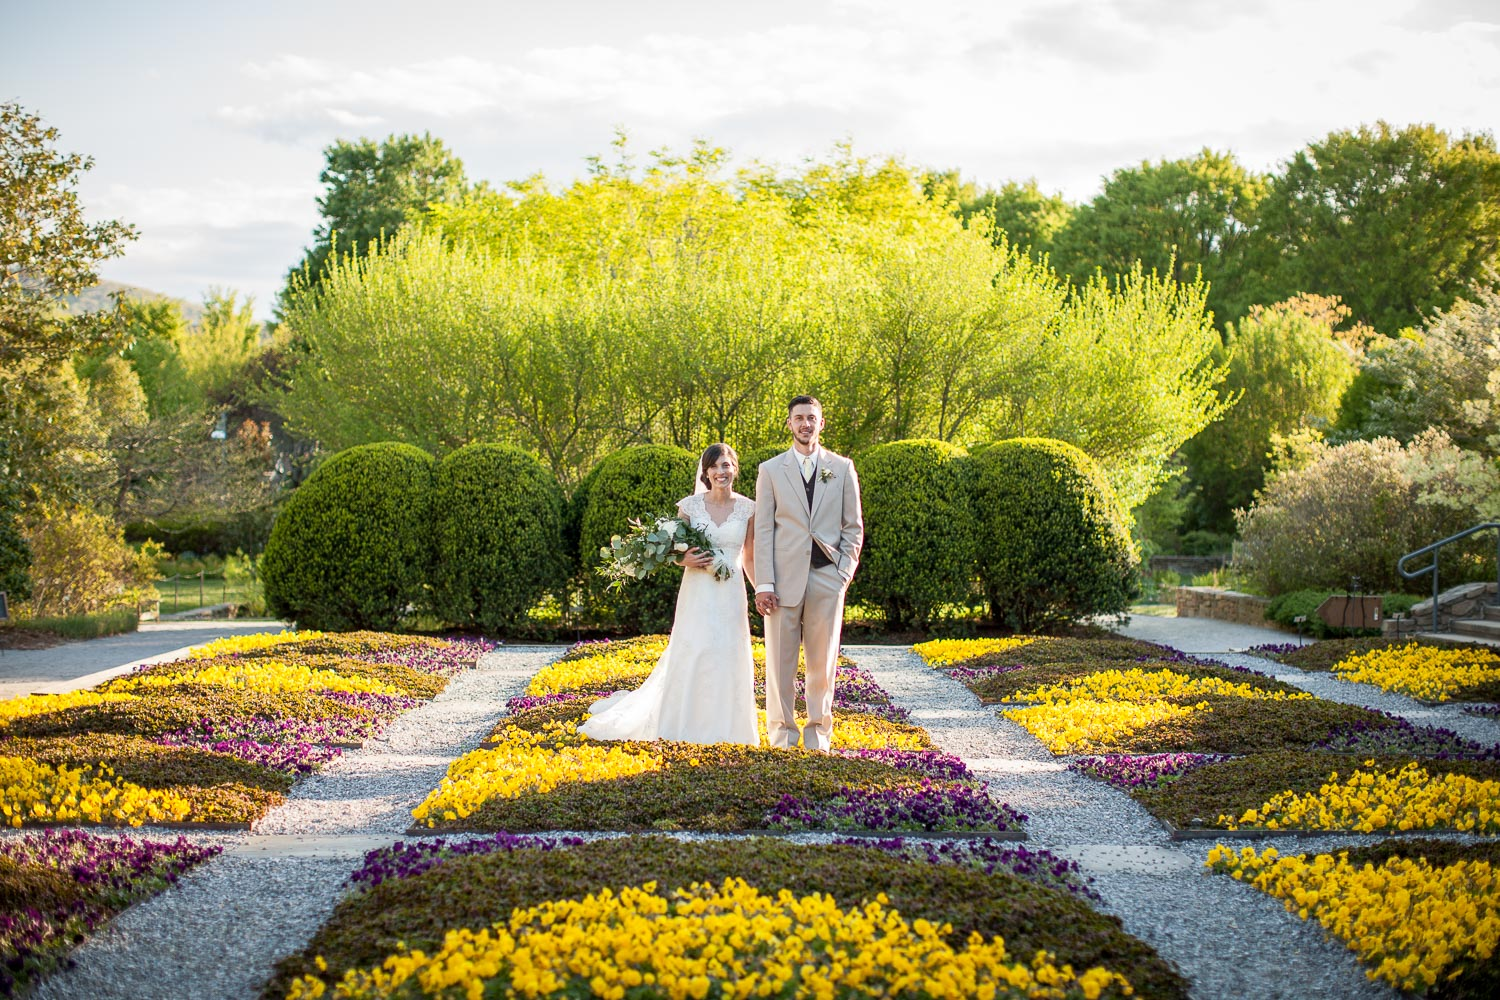 """Another great image from the  NC Arboretum , this area is called the """"quilt garden"""" and the staff there is constantly changing it depending on the season. The bright colors were perfect for this springtime wedding, and I just love the symmetry of the gardens and the landscaping behind it. My wife always says that the bride and groom Monique and Robby look like cake toppers, and I can't say that I disagree!"""